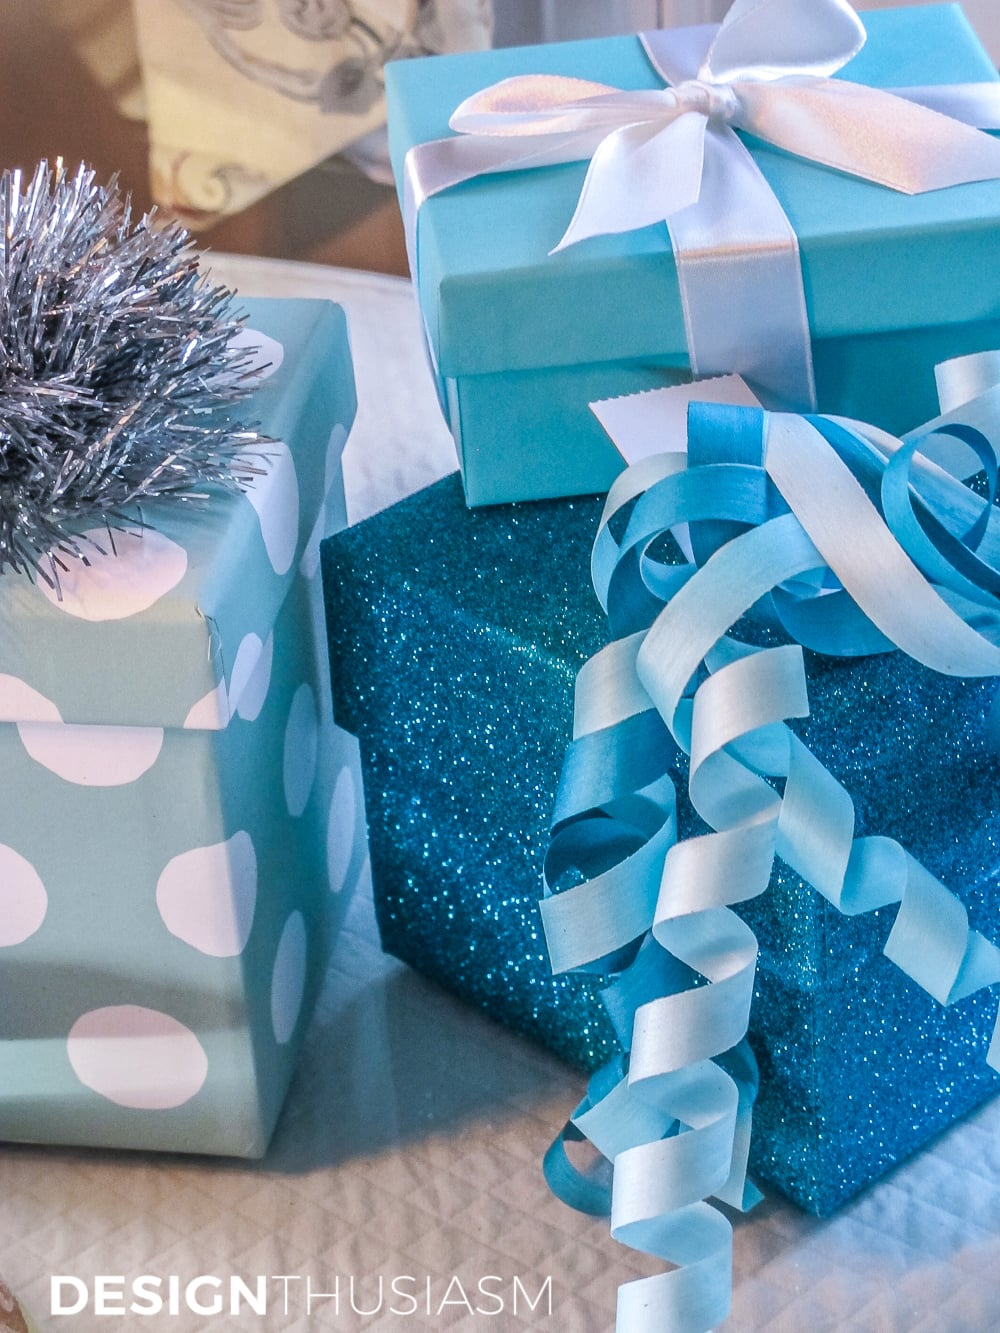 Elegant Hanukkah Decor Using Tiffany Blue | Designthusiasm.com